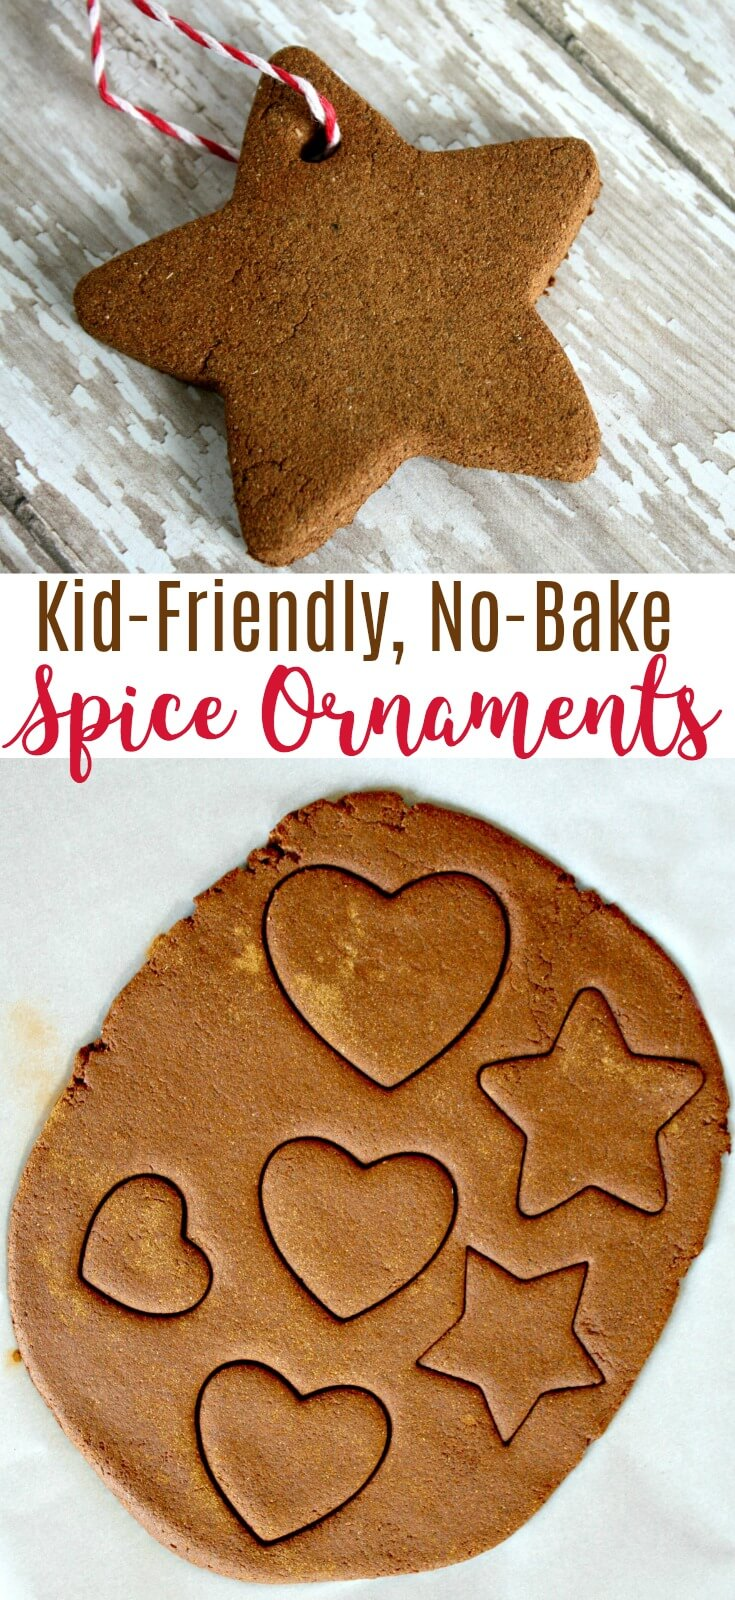 This no bake cinnamon DIY spice ornament recipe will wow the kids and have your house smelling amazing from fall through the holiday season